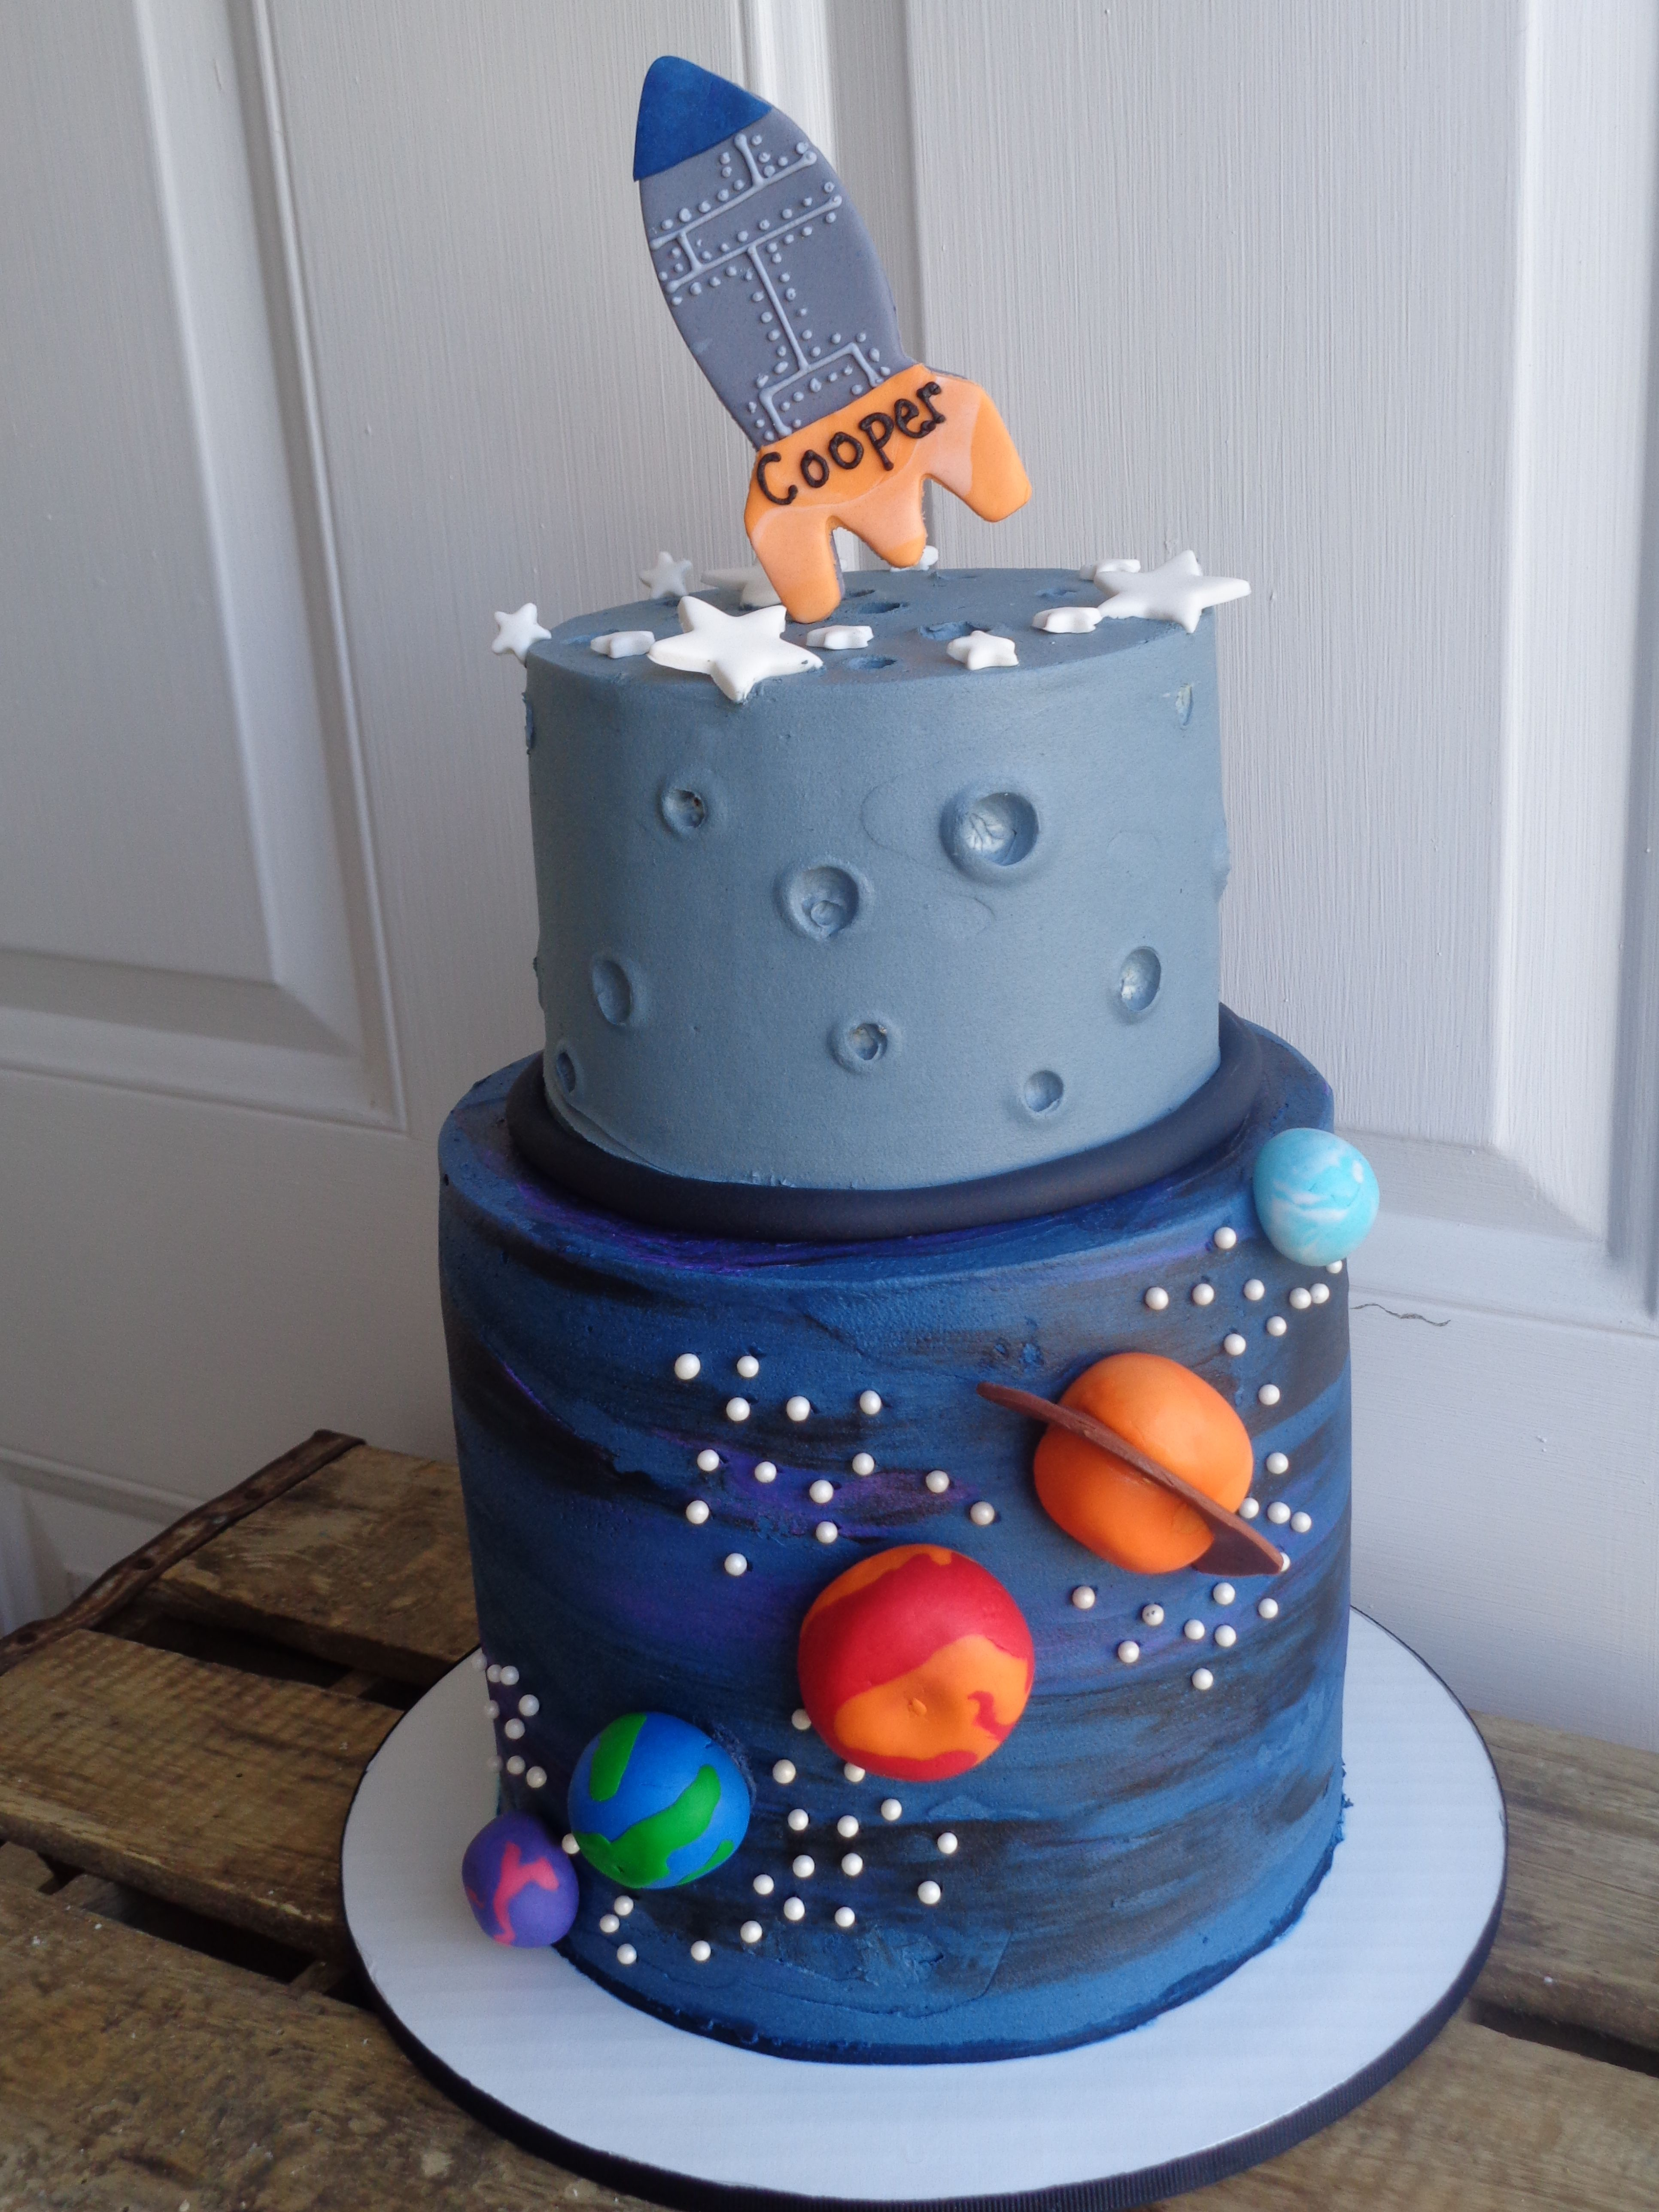 Rocket Birthday Cake Ideas F75a663bea65f71829c7aee7c4fde9c6